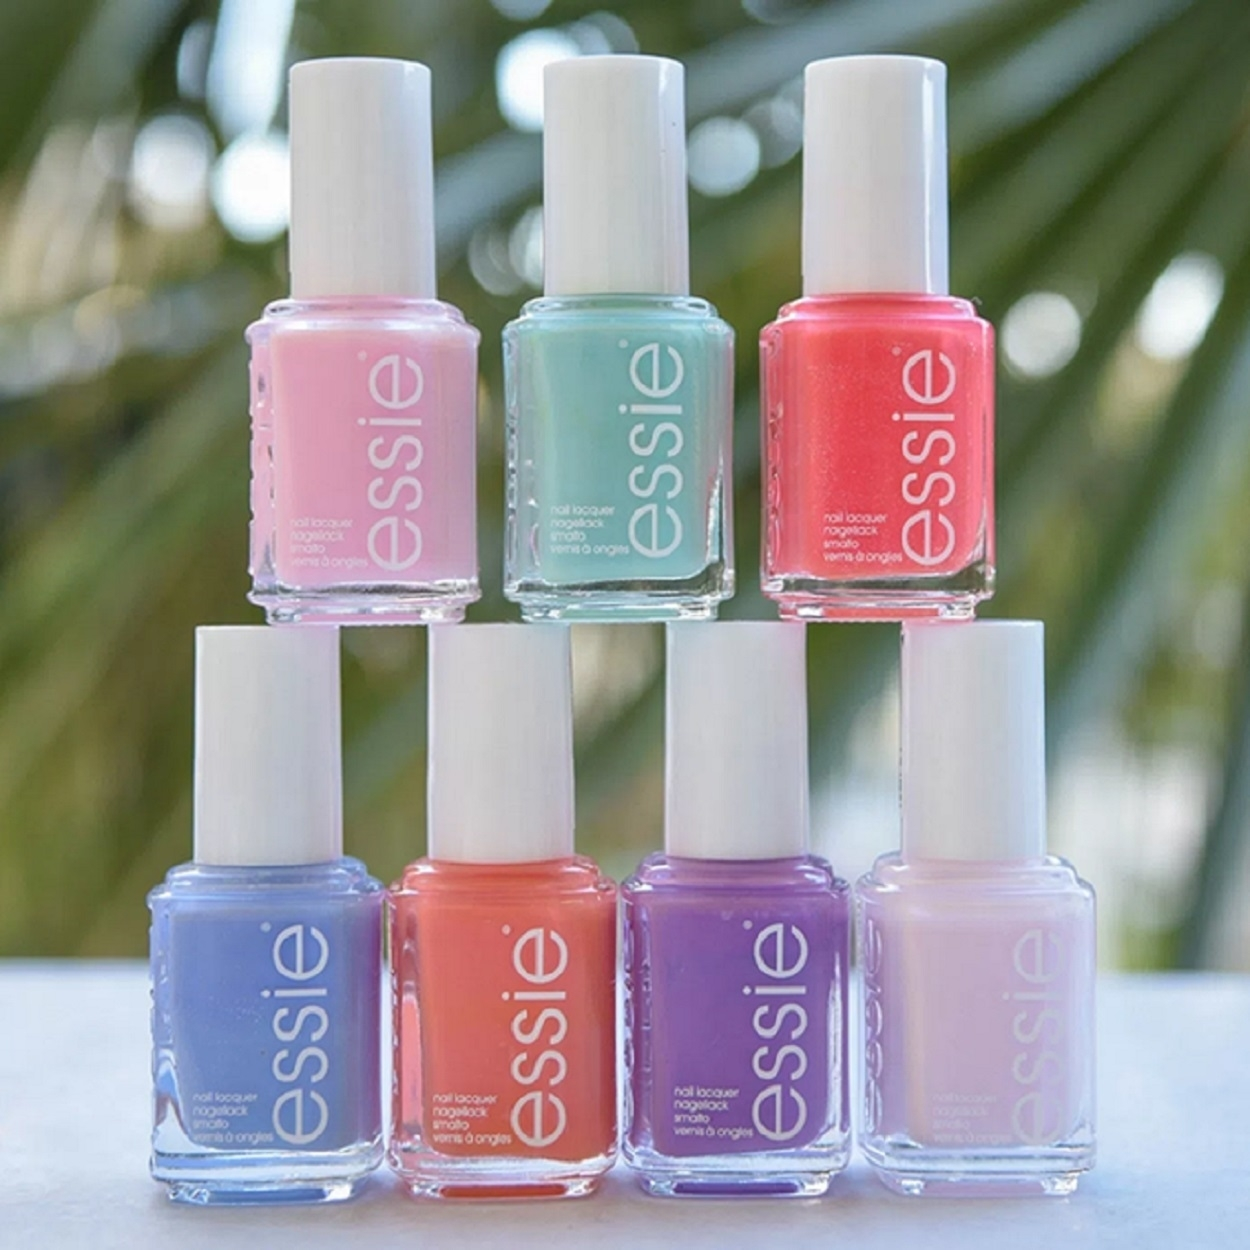 Essie Professional Nail Polish 5 Pack Mystery Deal-in Nail